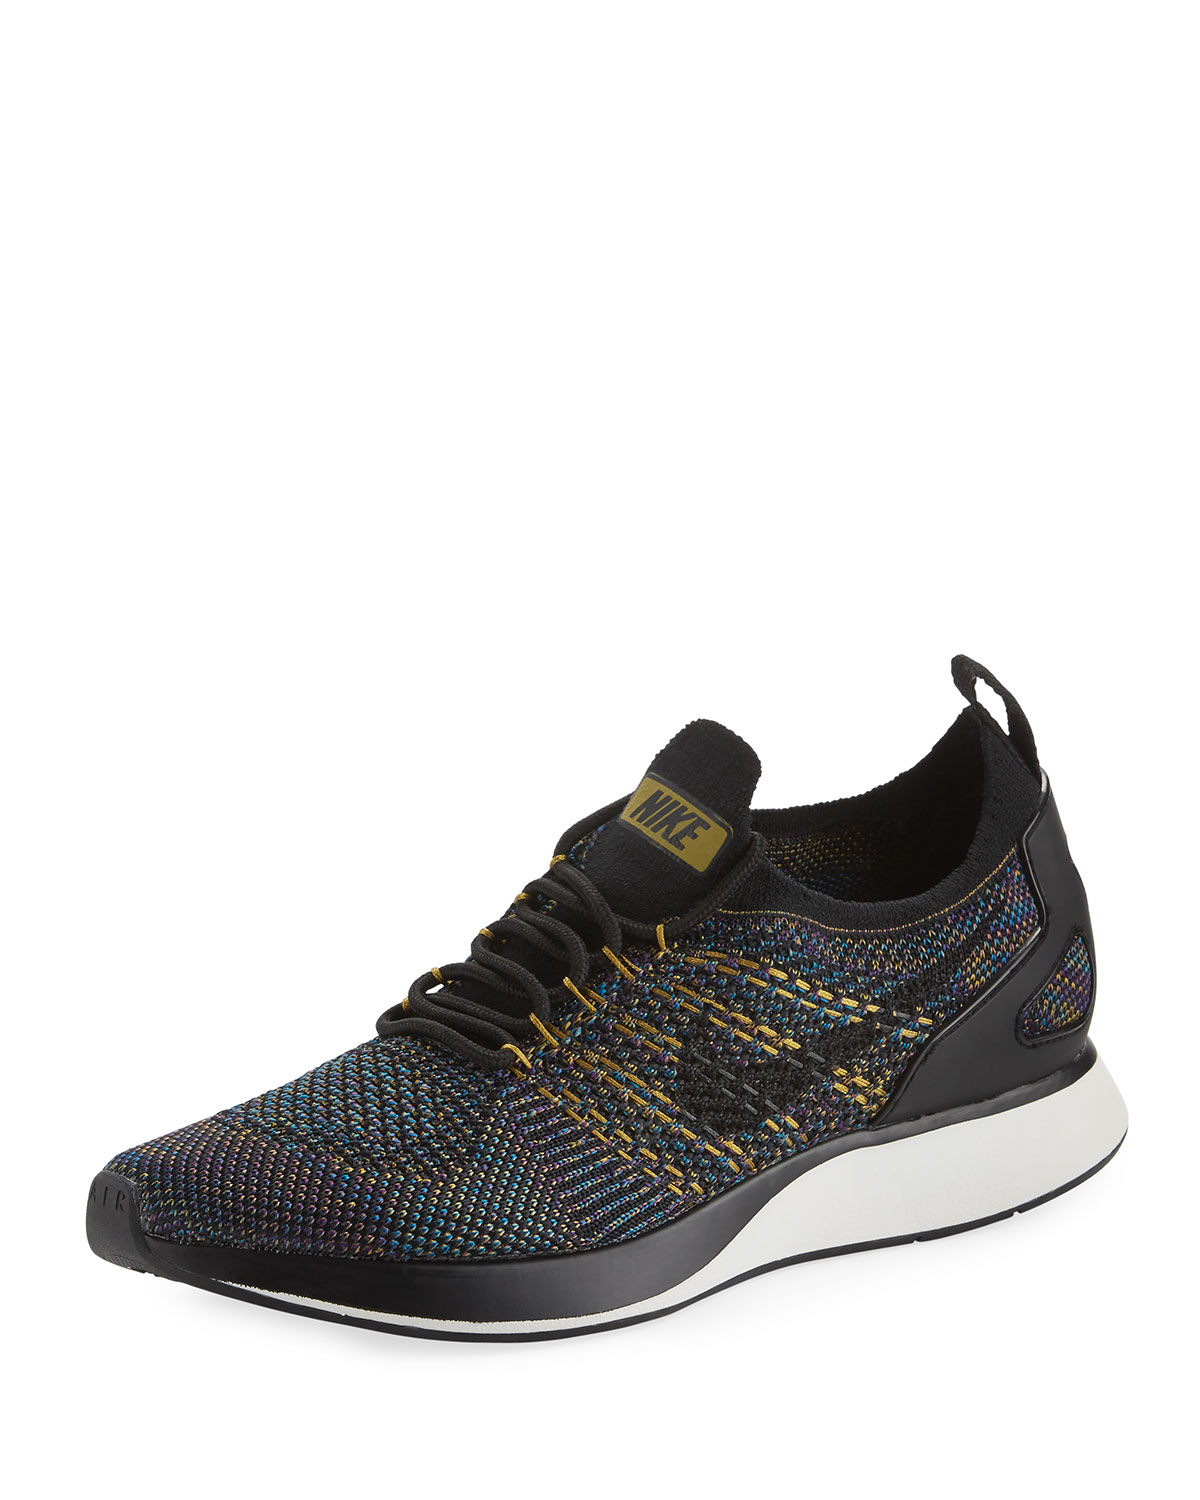 96a052aa2e05 Nike Air Zoom Mariah Flyknit Racer Sneakers